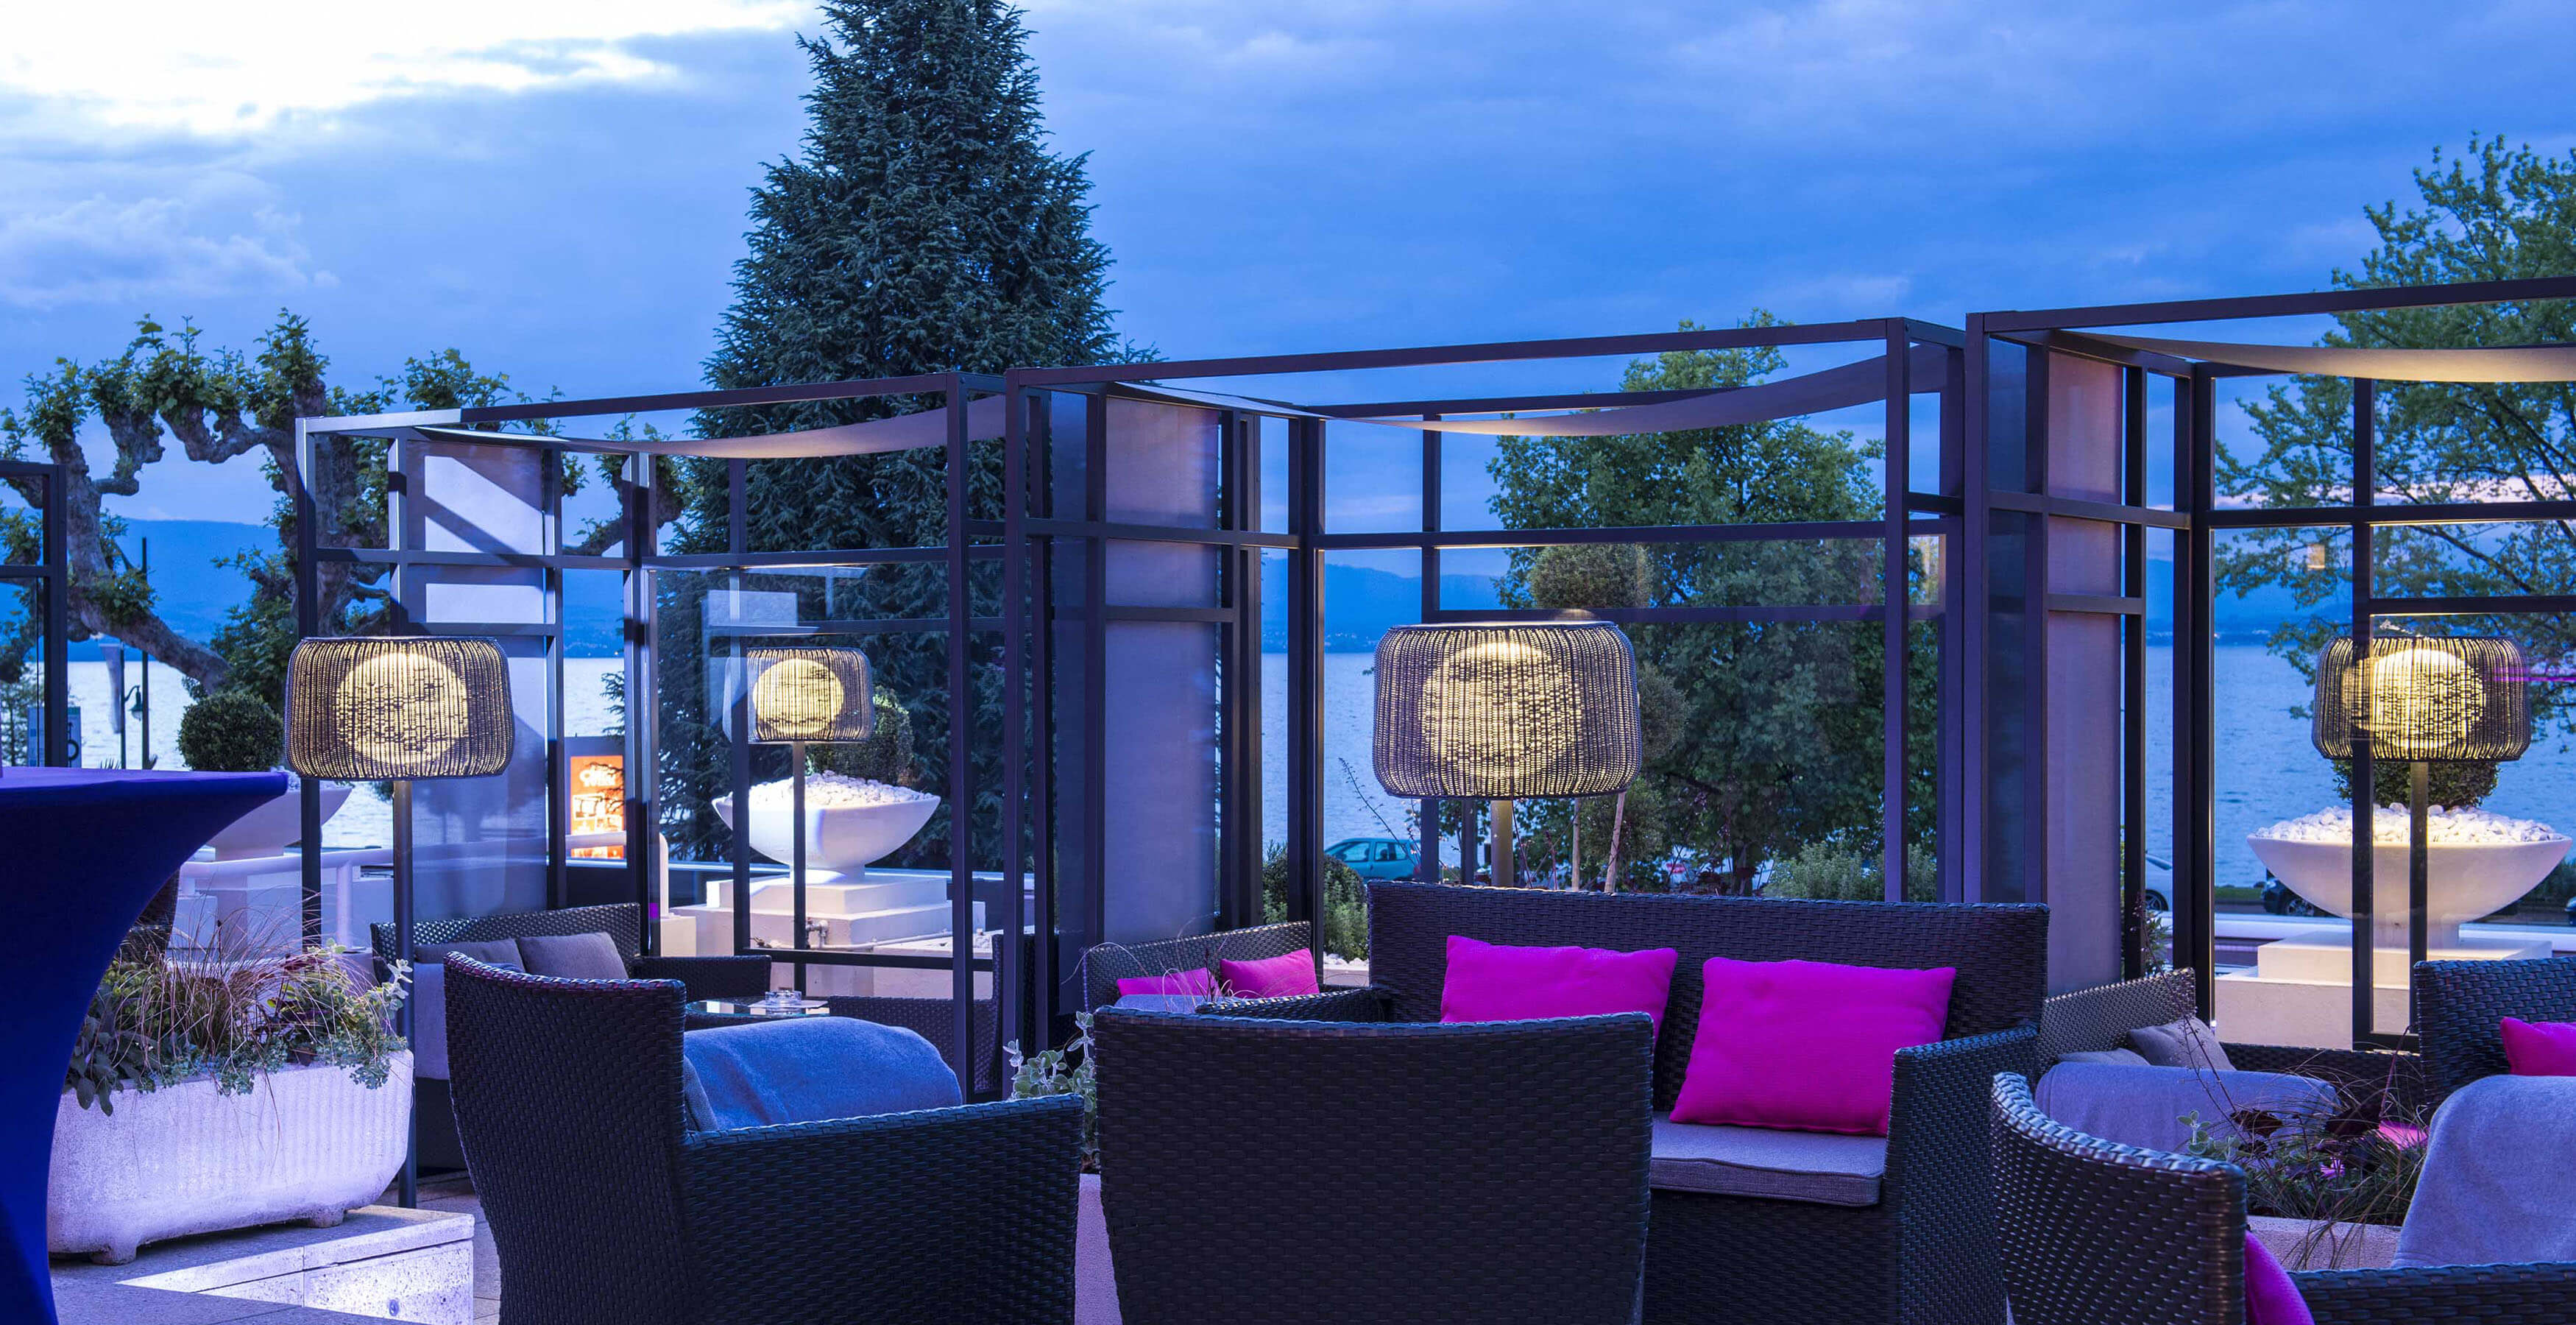 Bar lounge le piano bar lounge au casino d evian evian les bains